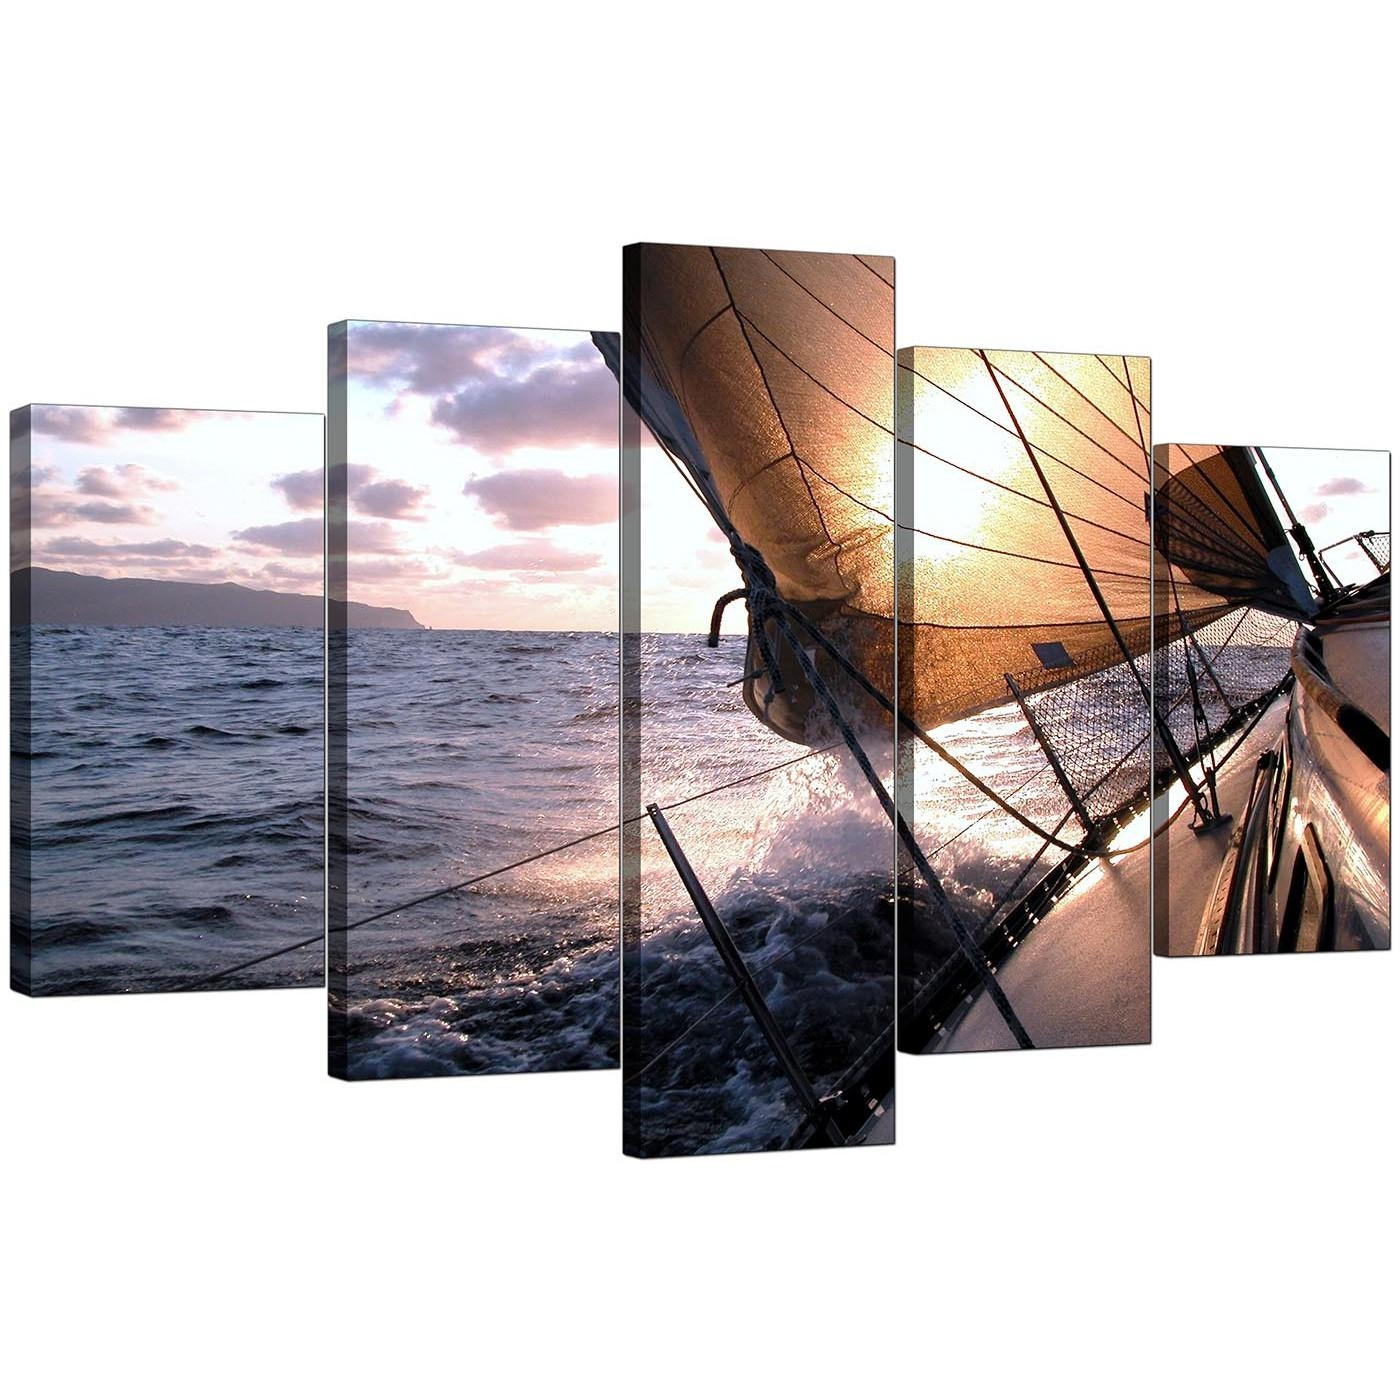 Boat Canvas Prints Uk For Your Living Room – 5 Piece Inside Modern Wall Art Uk (Image 9 of 20)